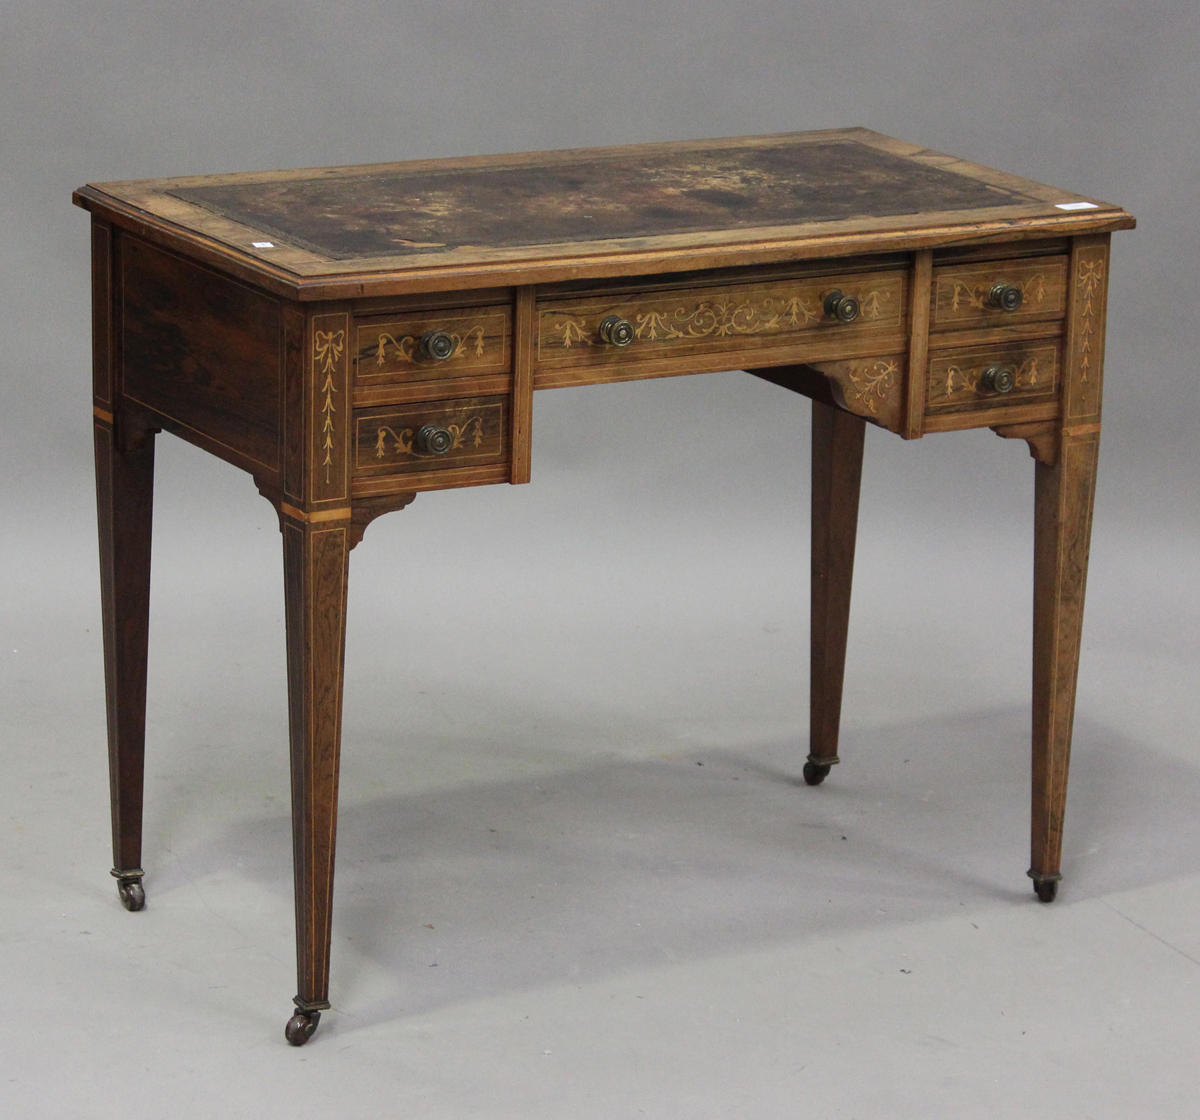 A late Victorian rosewood writing table with boxwood foliate and line inlaid decoration, height